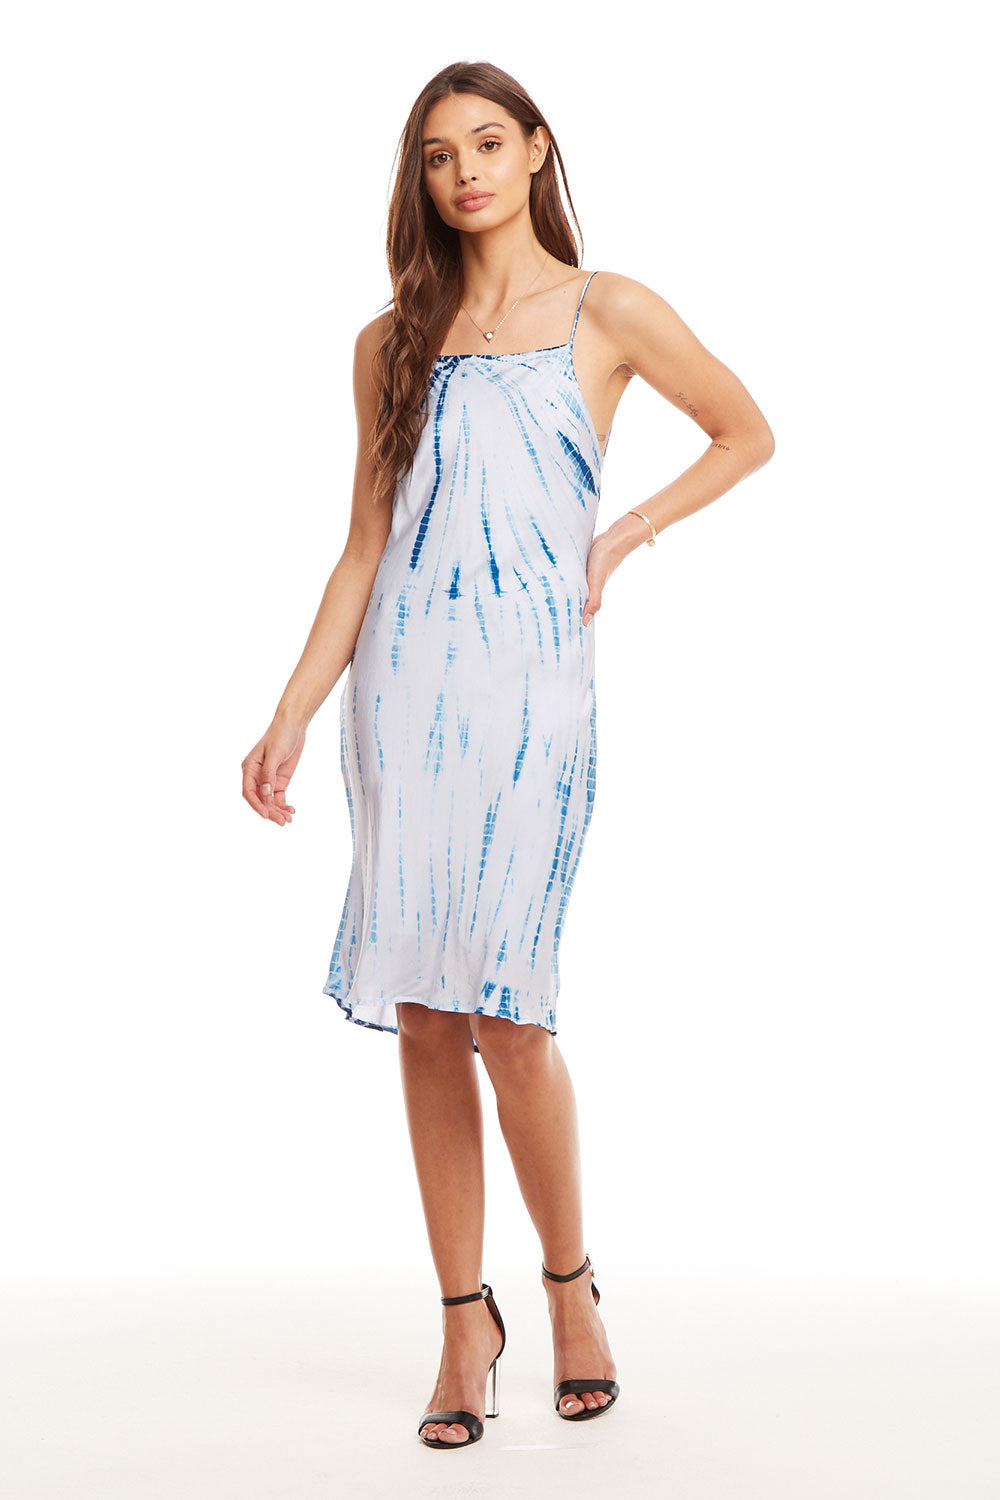 6099bf1bc073 Silky Basics Deep Scoop Back Midi Slip Dress, WOMENS, chaserbrand.com,chaser